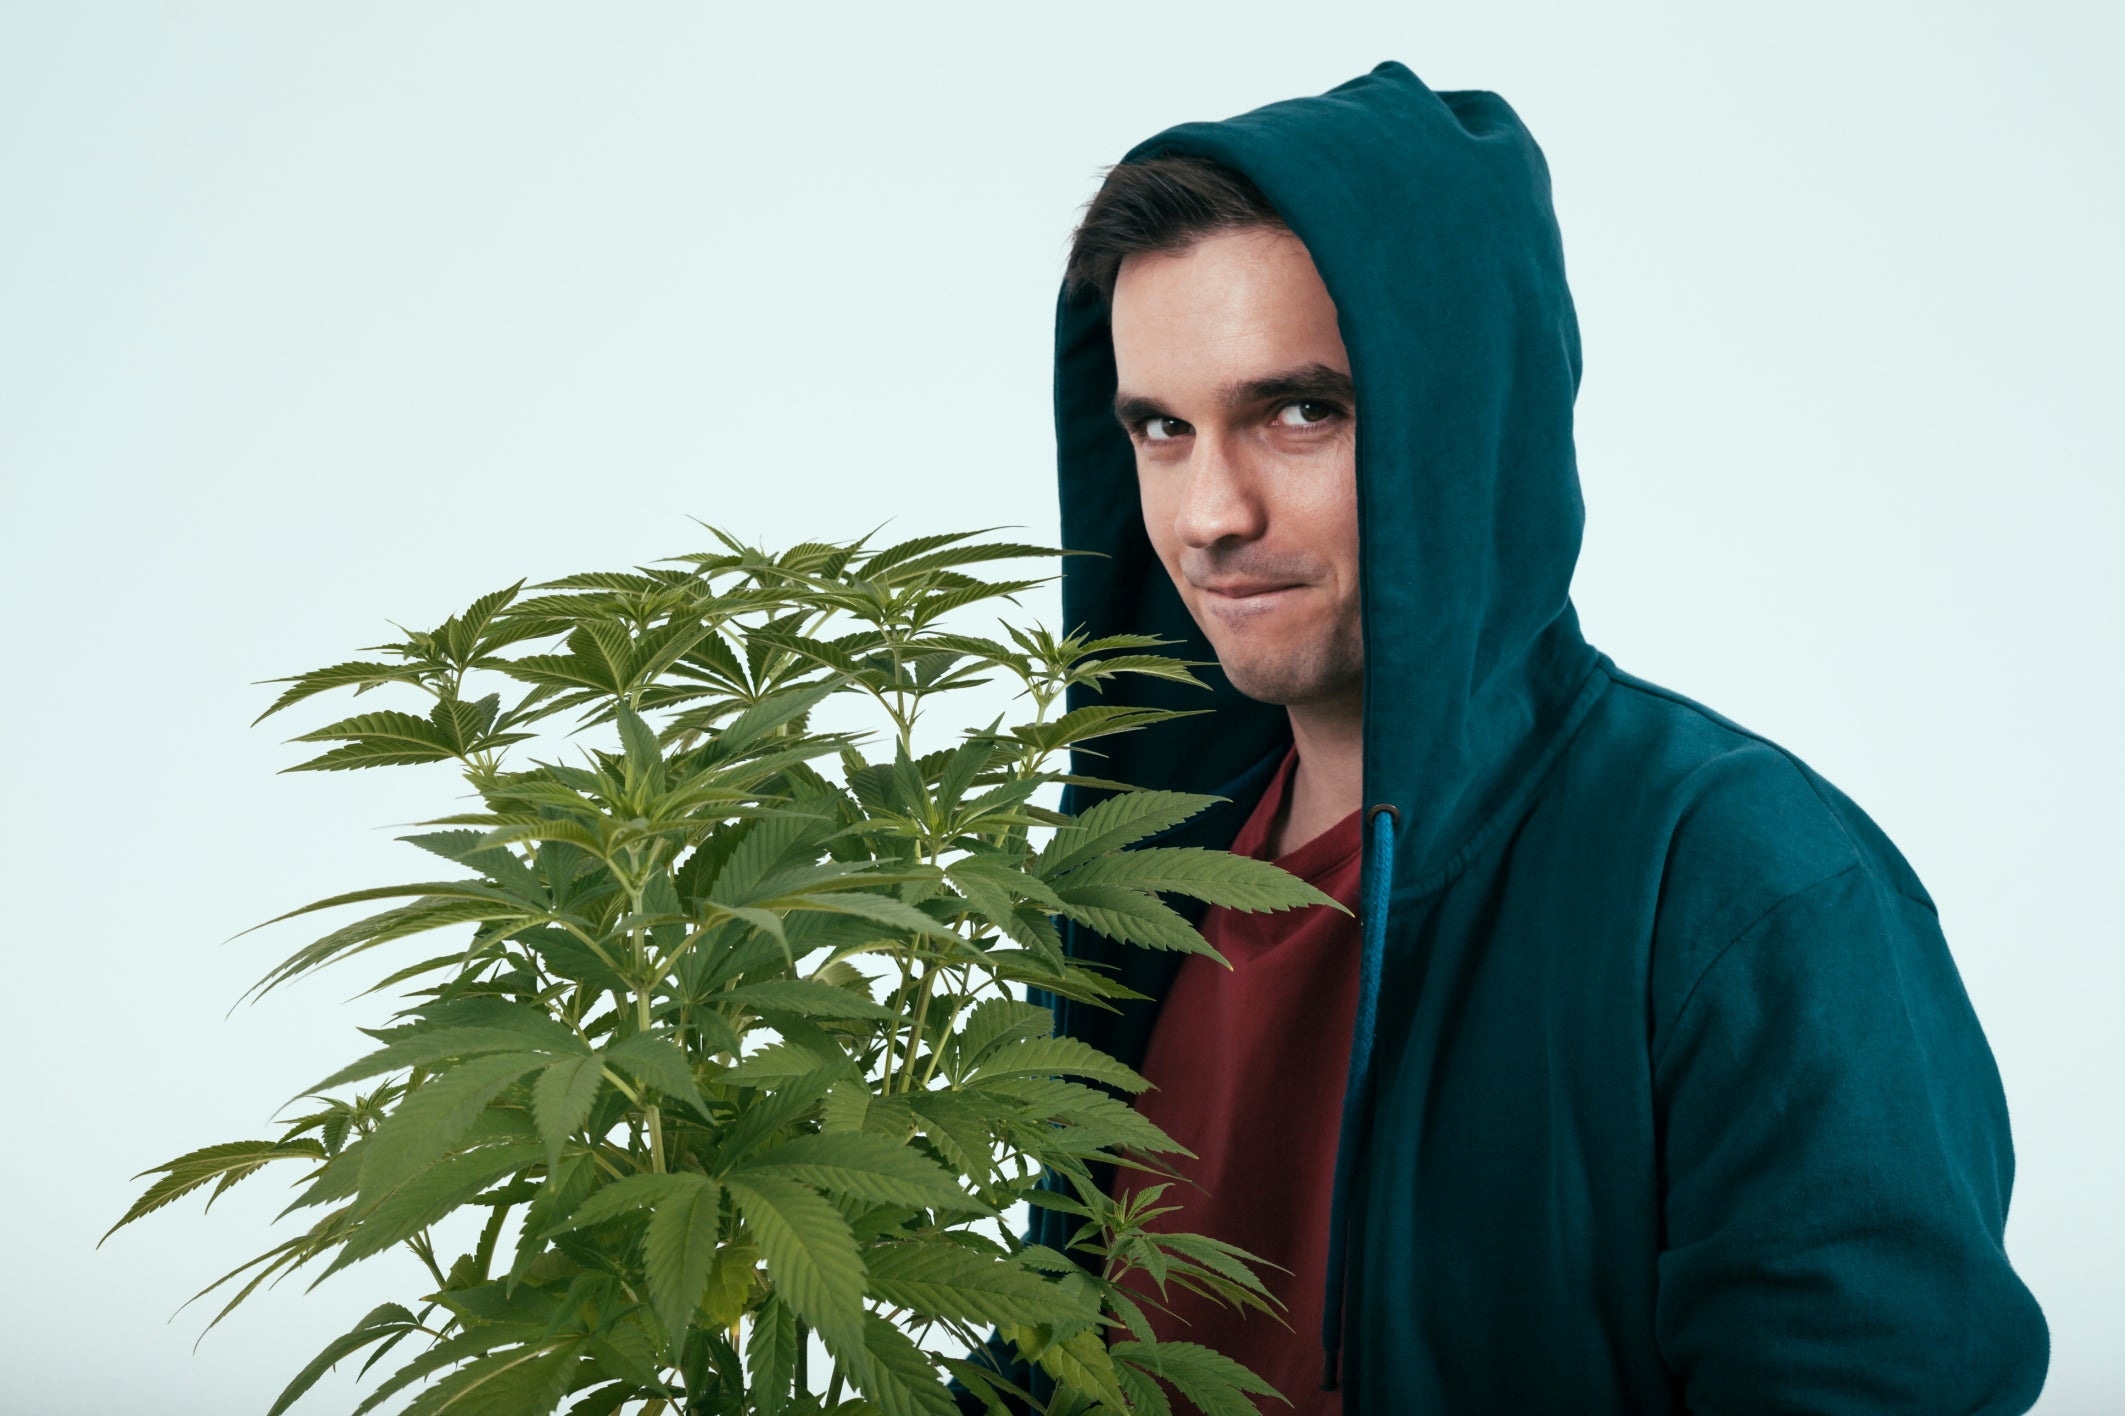 A suspicious-looking young man in a blue hoodie smirking and holding a potted cannabis plant.